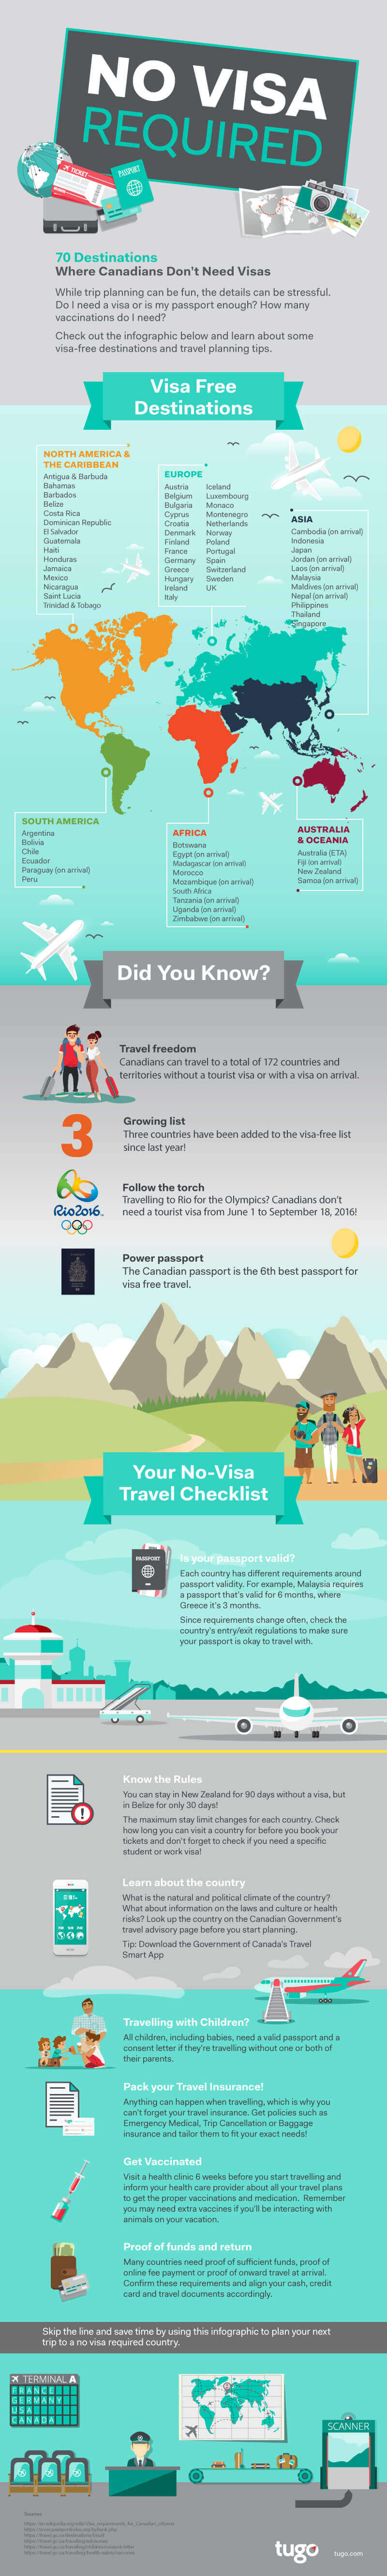 Visa Free Countries Canadians Can Visit With Their Passport